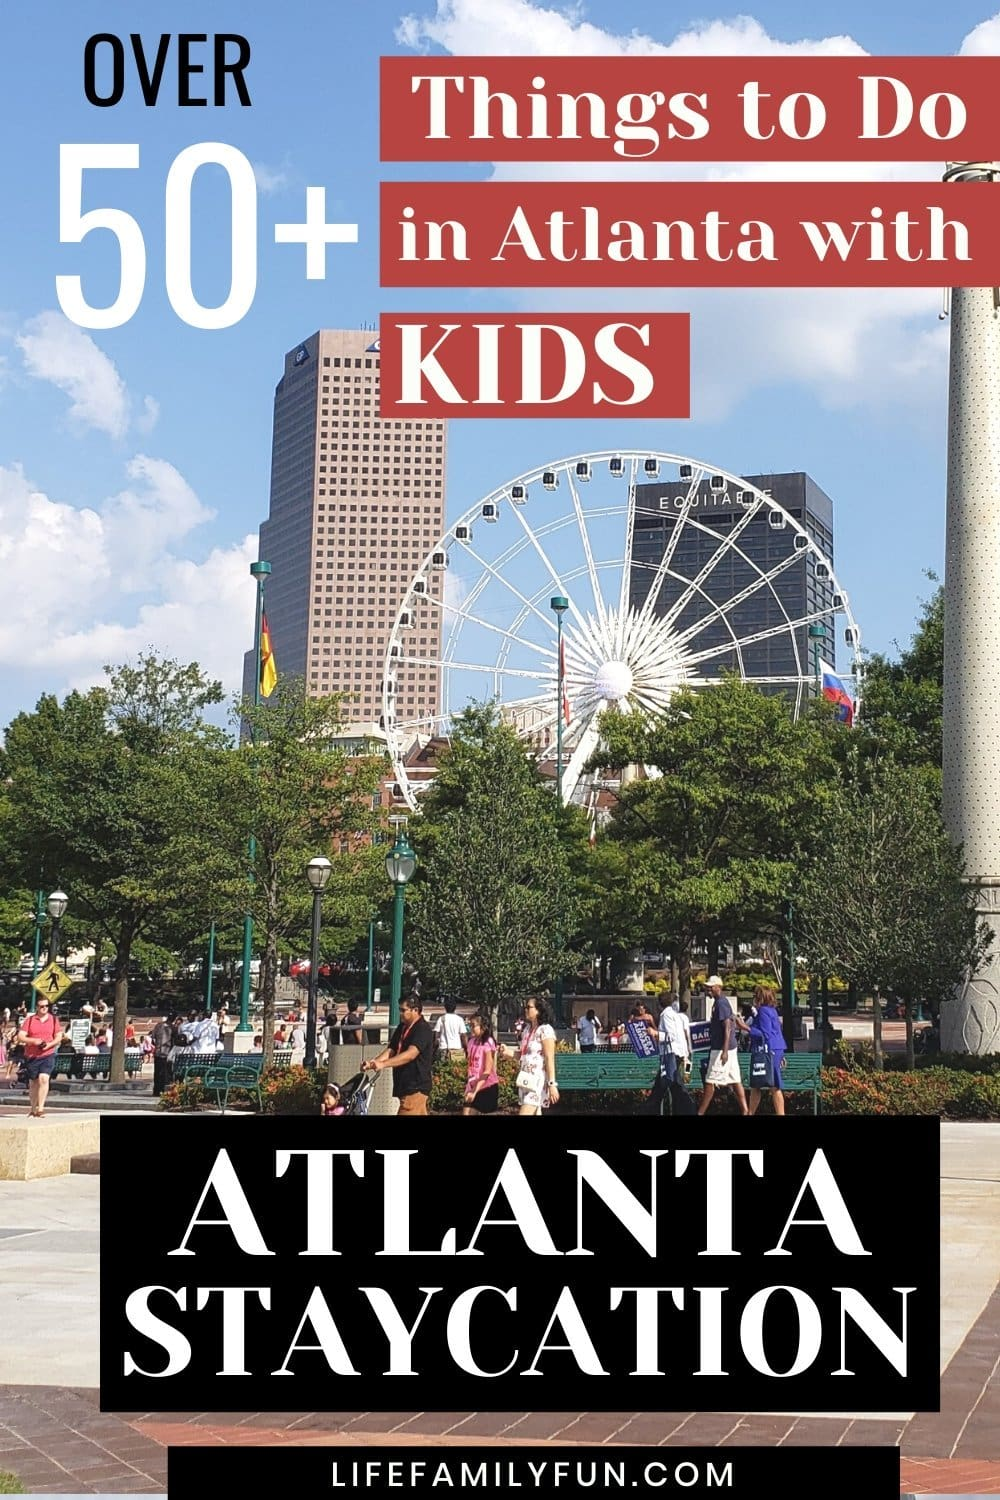 atlanta staycation ideas